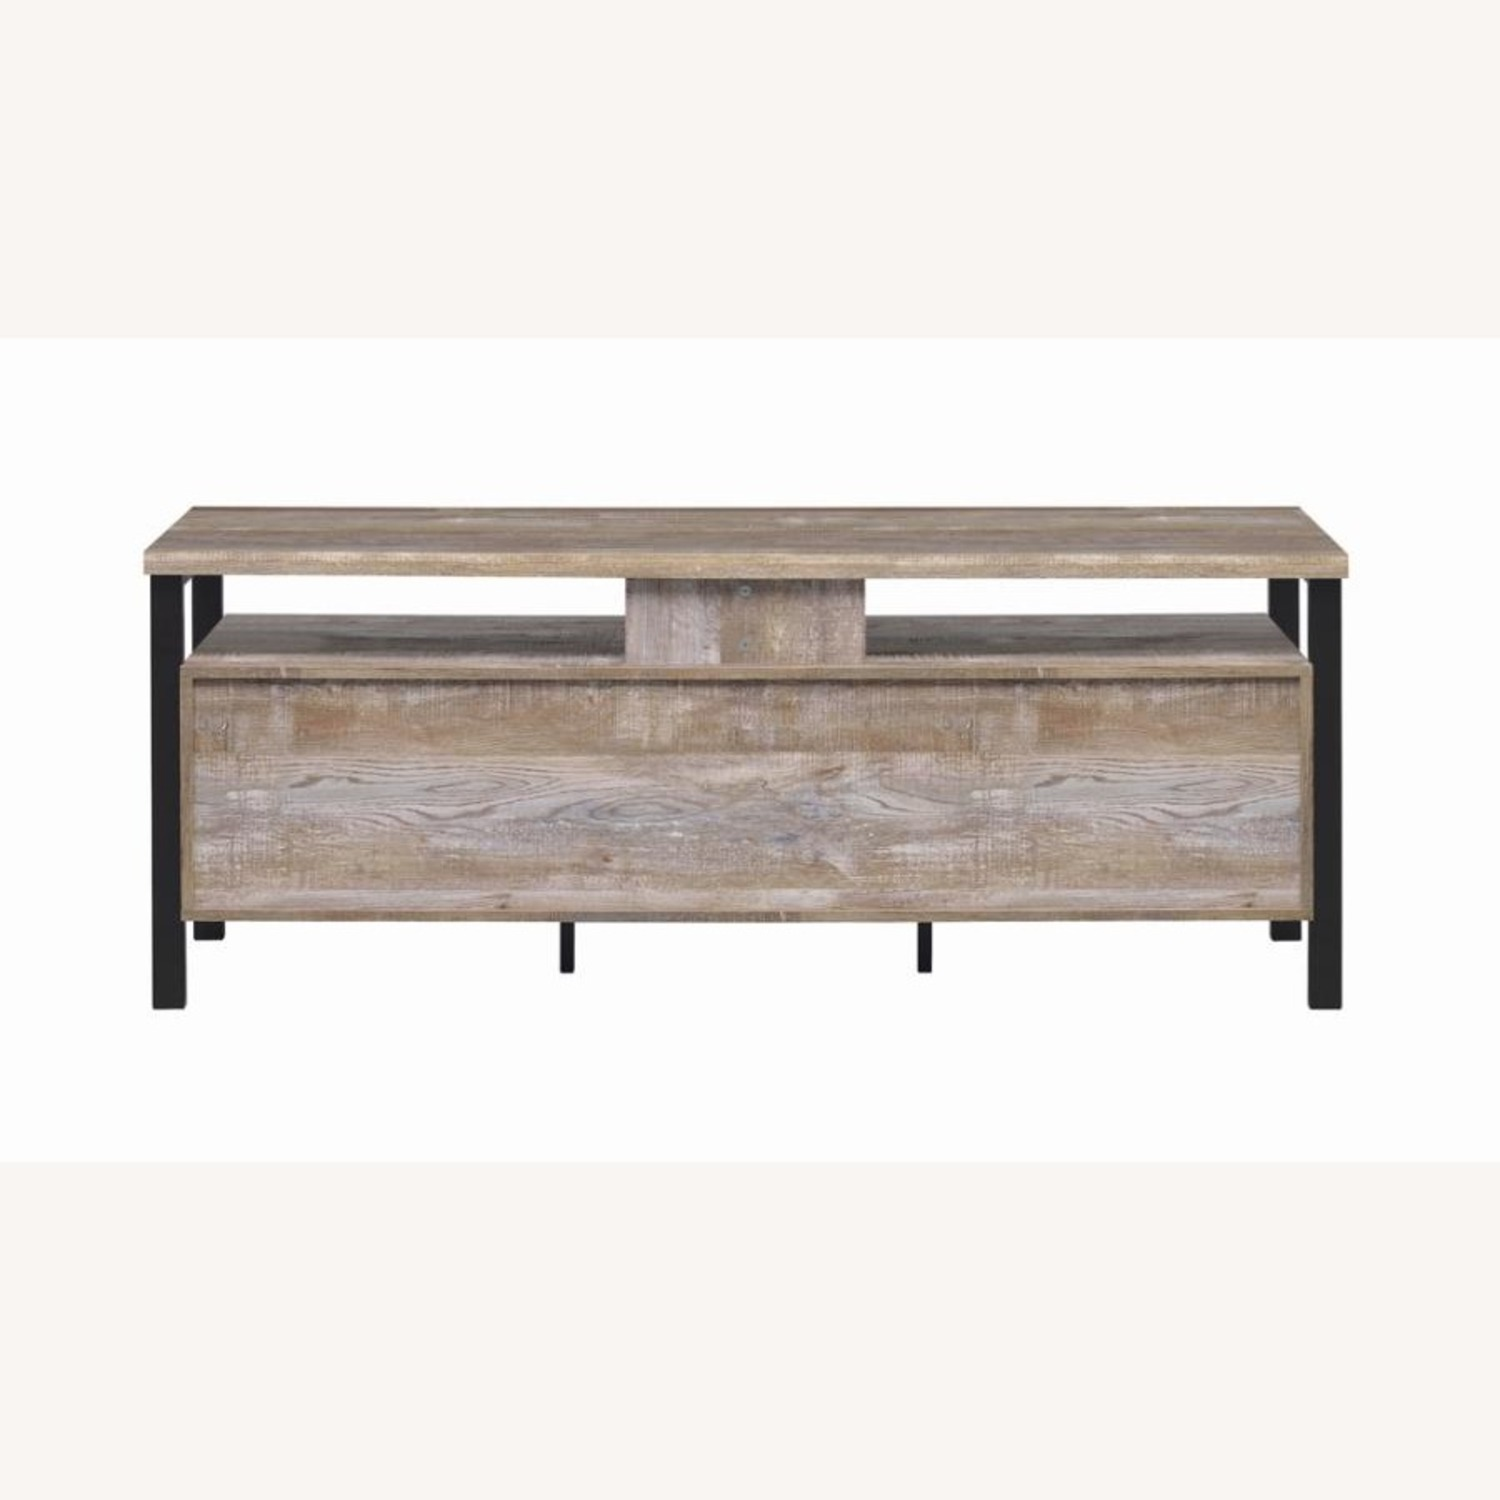 TV Console In Weathered Oak W/ Storage & Shelves - image-4